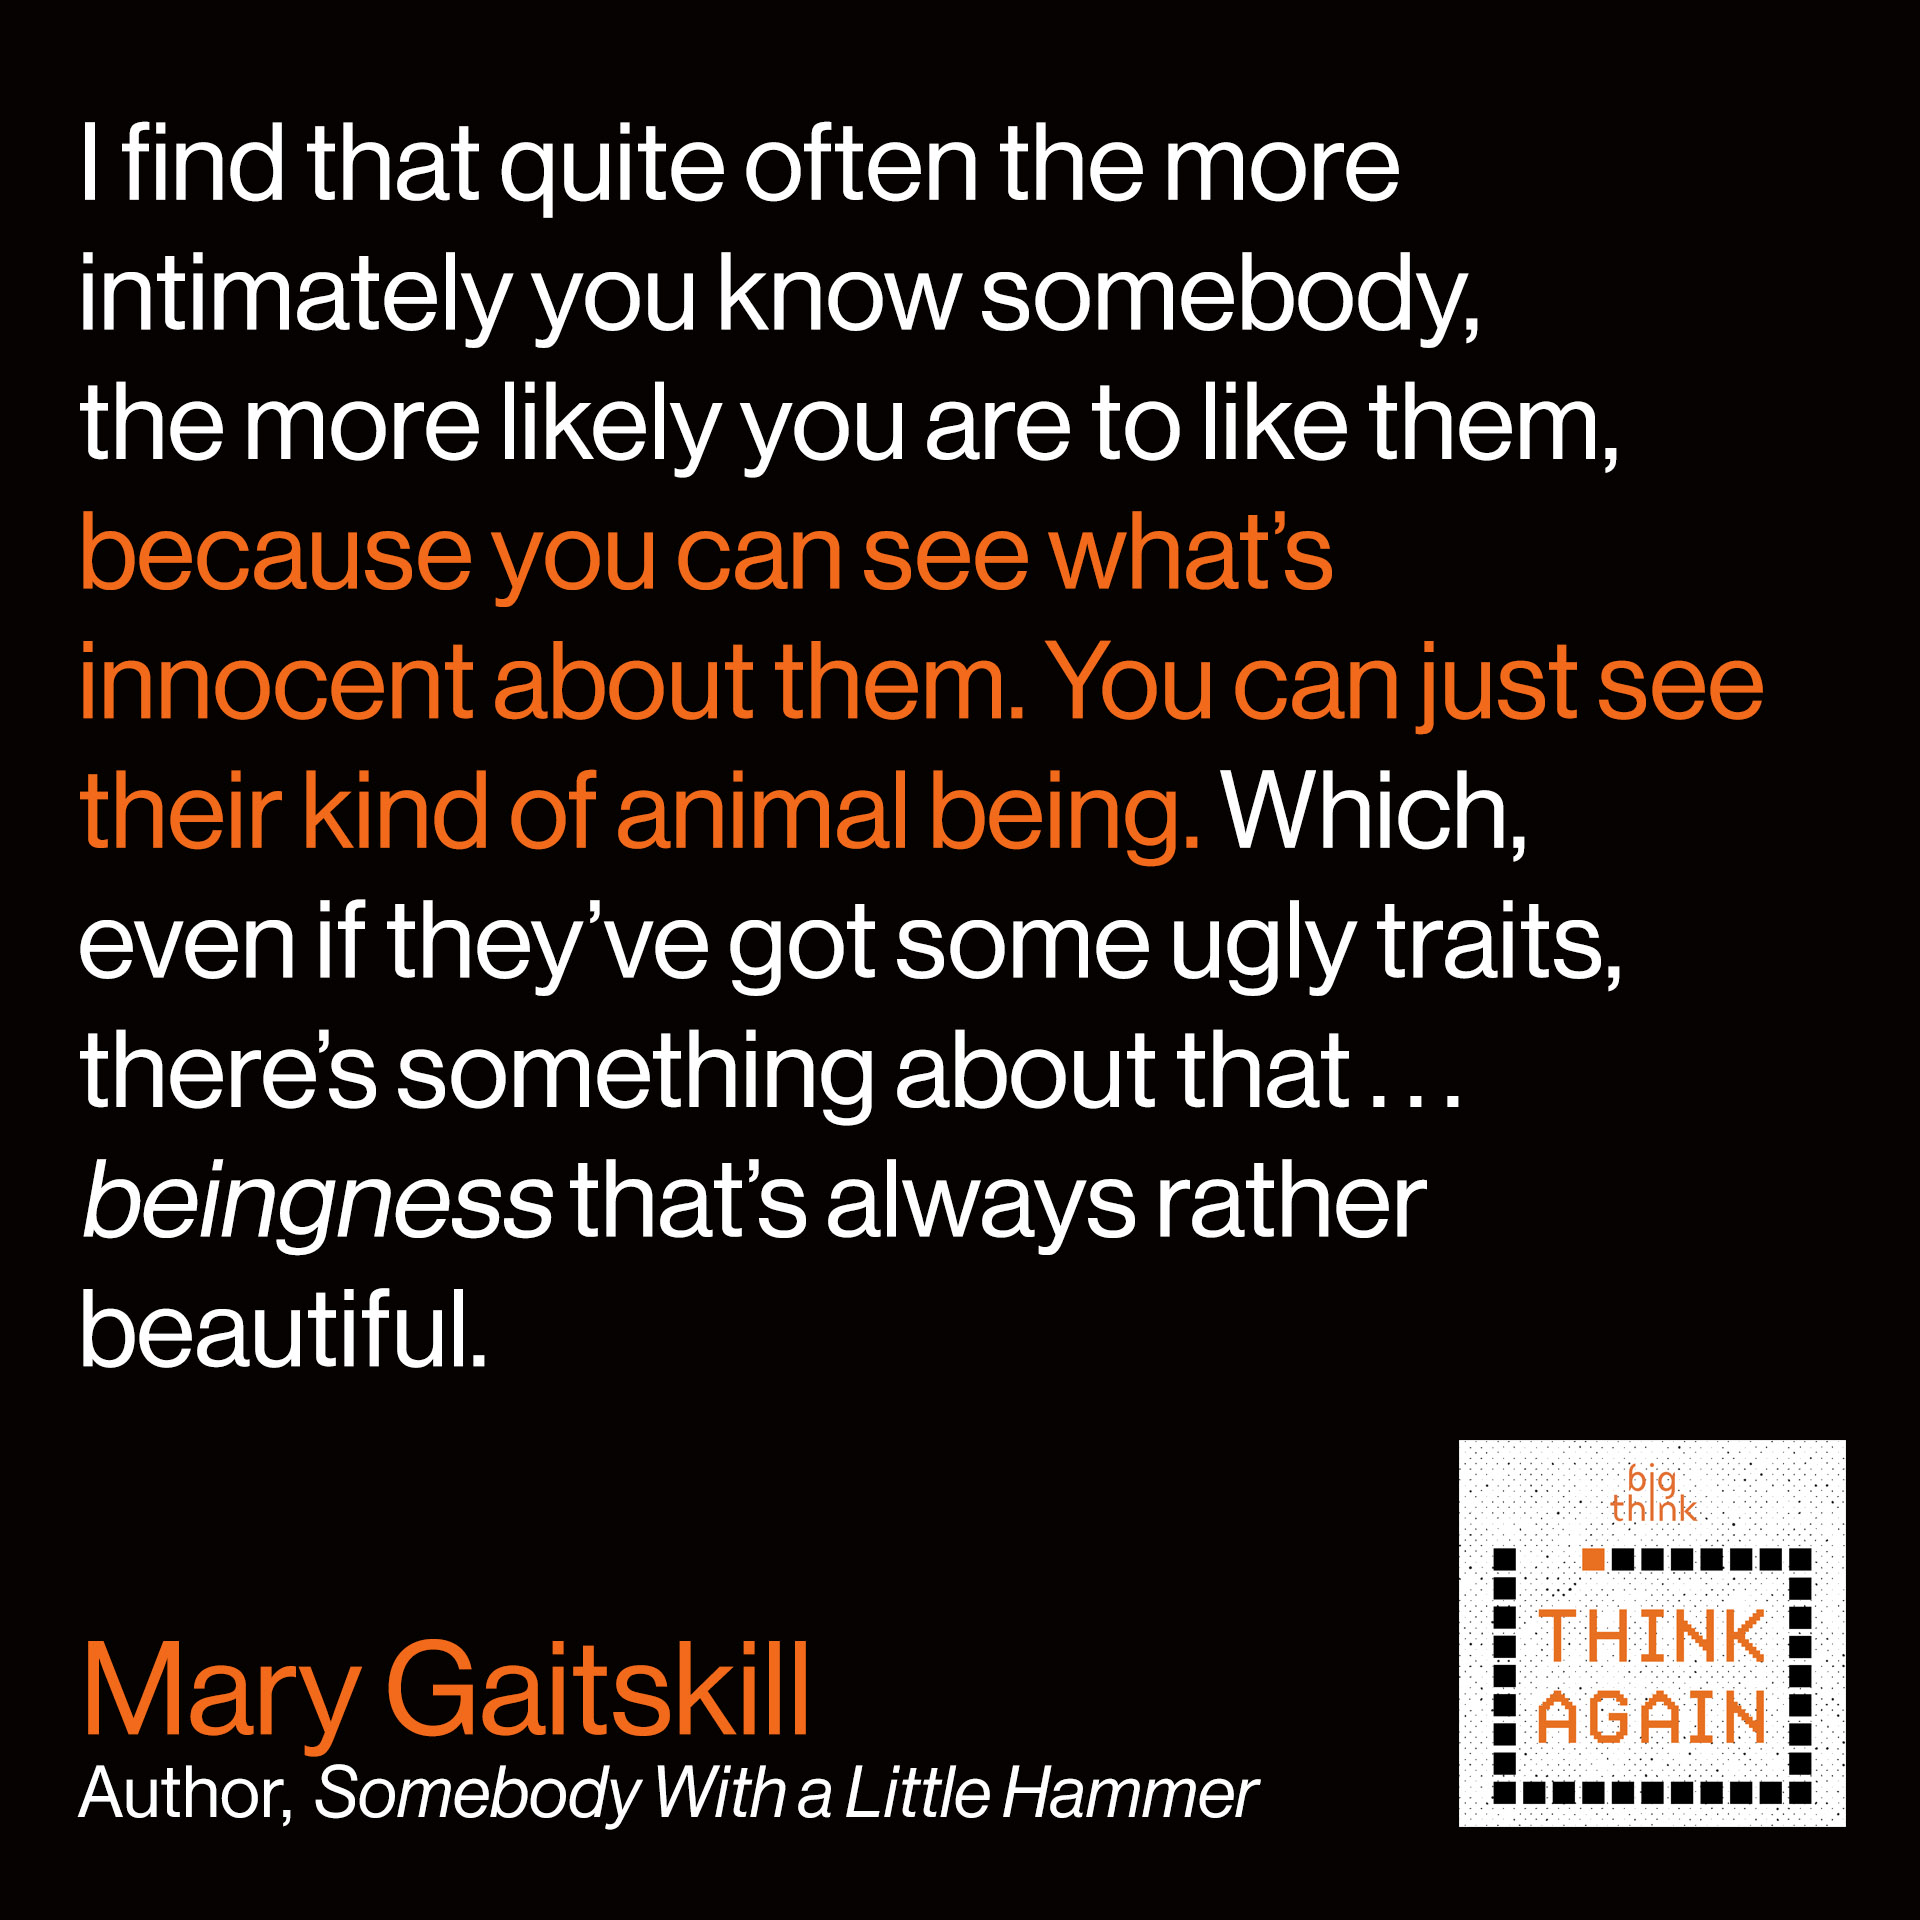 Mary Gaitskill: I find that quite often the more  intimately you know somebody,  the more likely you are to like them,  because you can see what's  innocent about them. You can just  see their kind of animal being. Which,  even if they've got some ugly traits,  there's something about that…beingness  that's always rather beautiful.